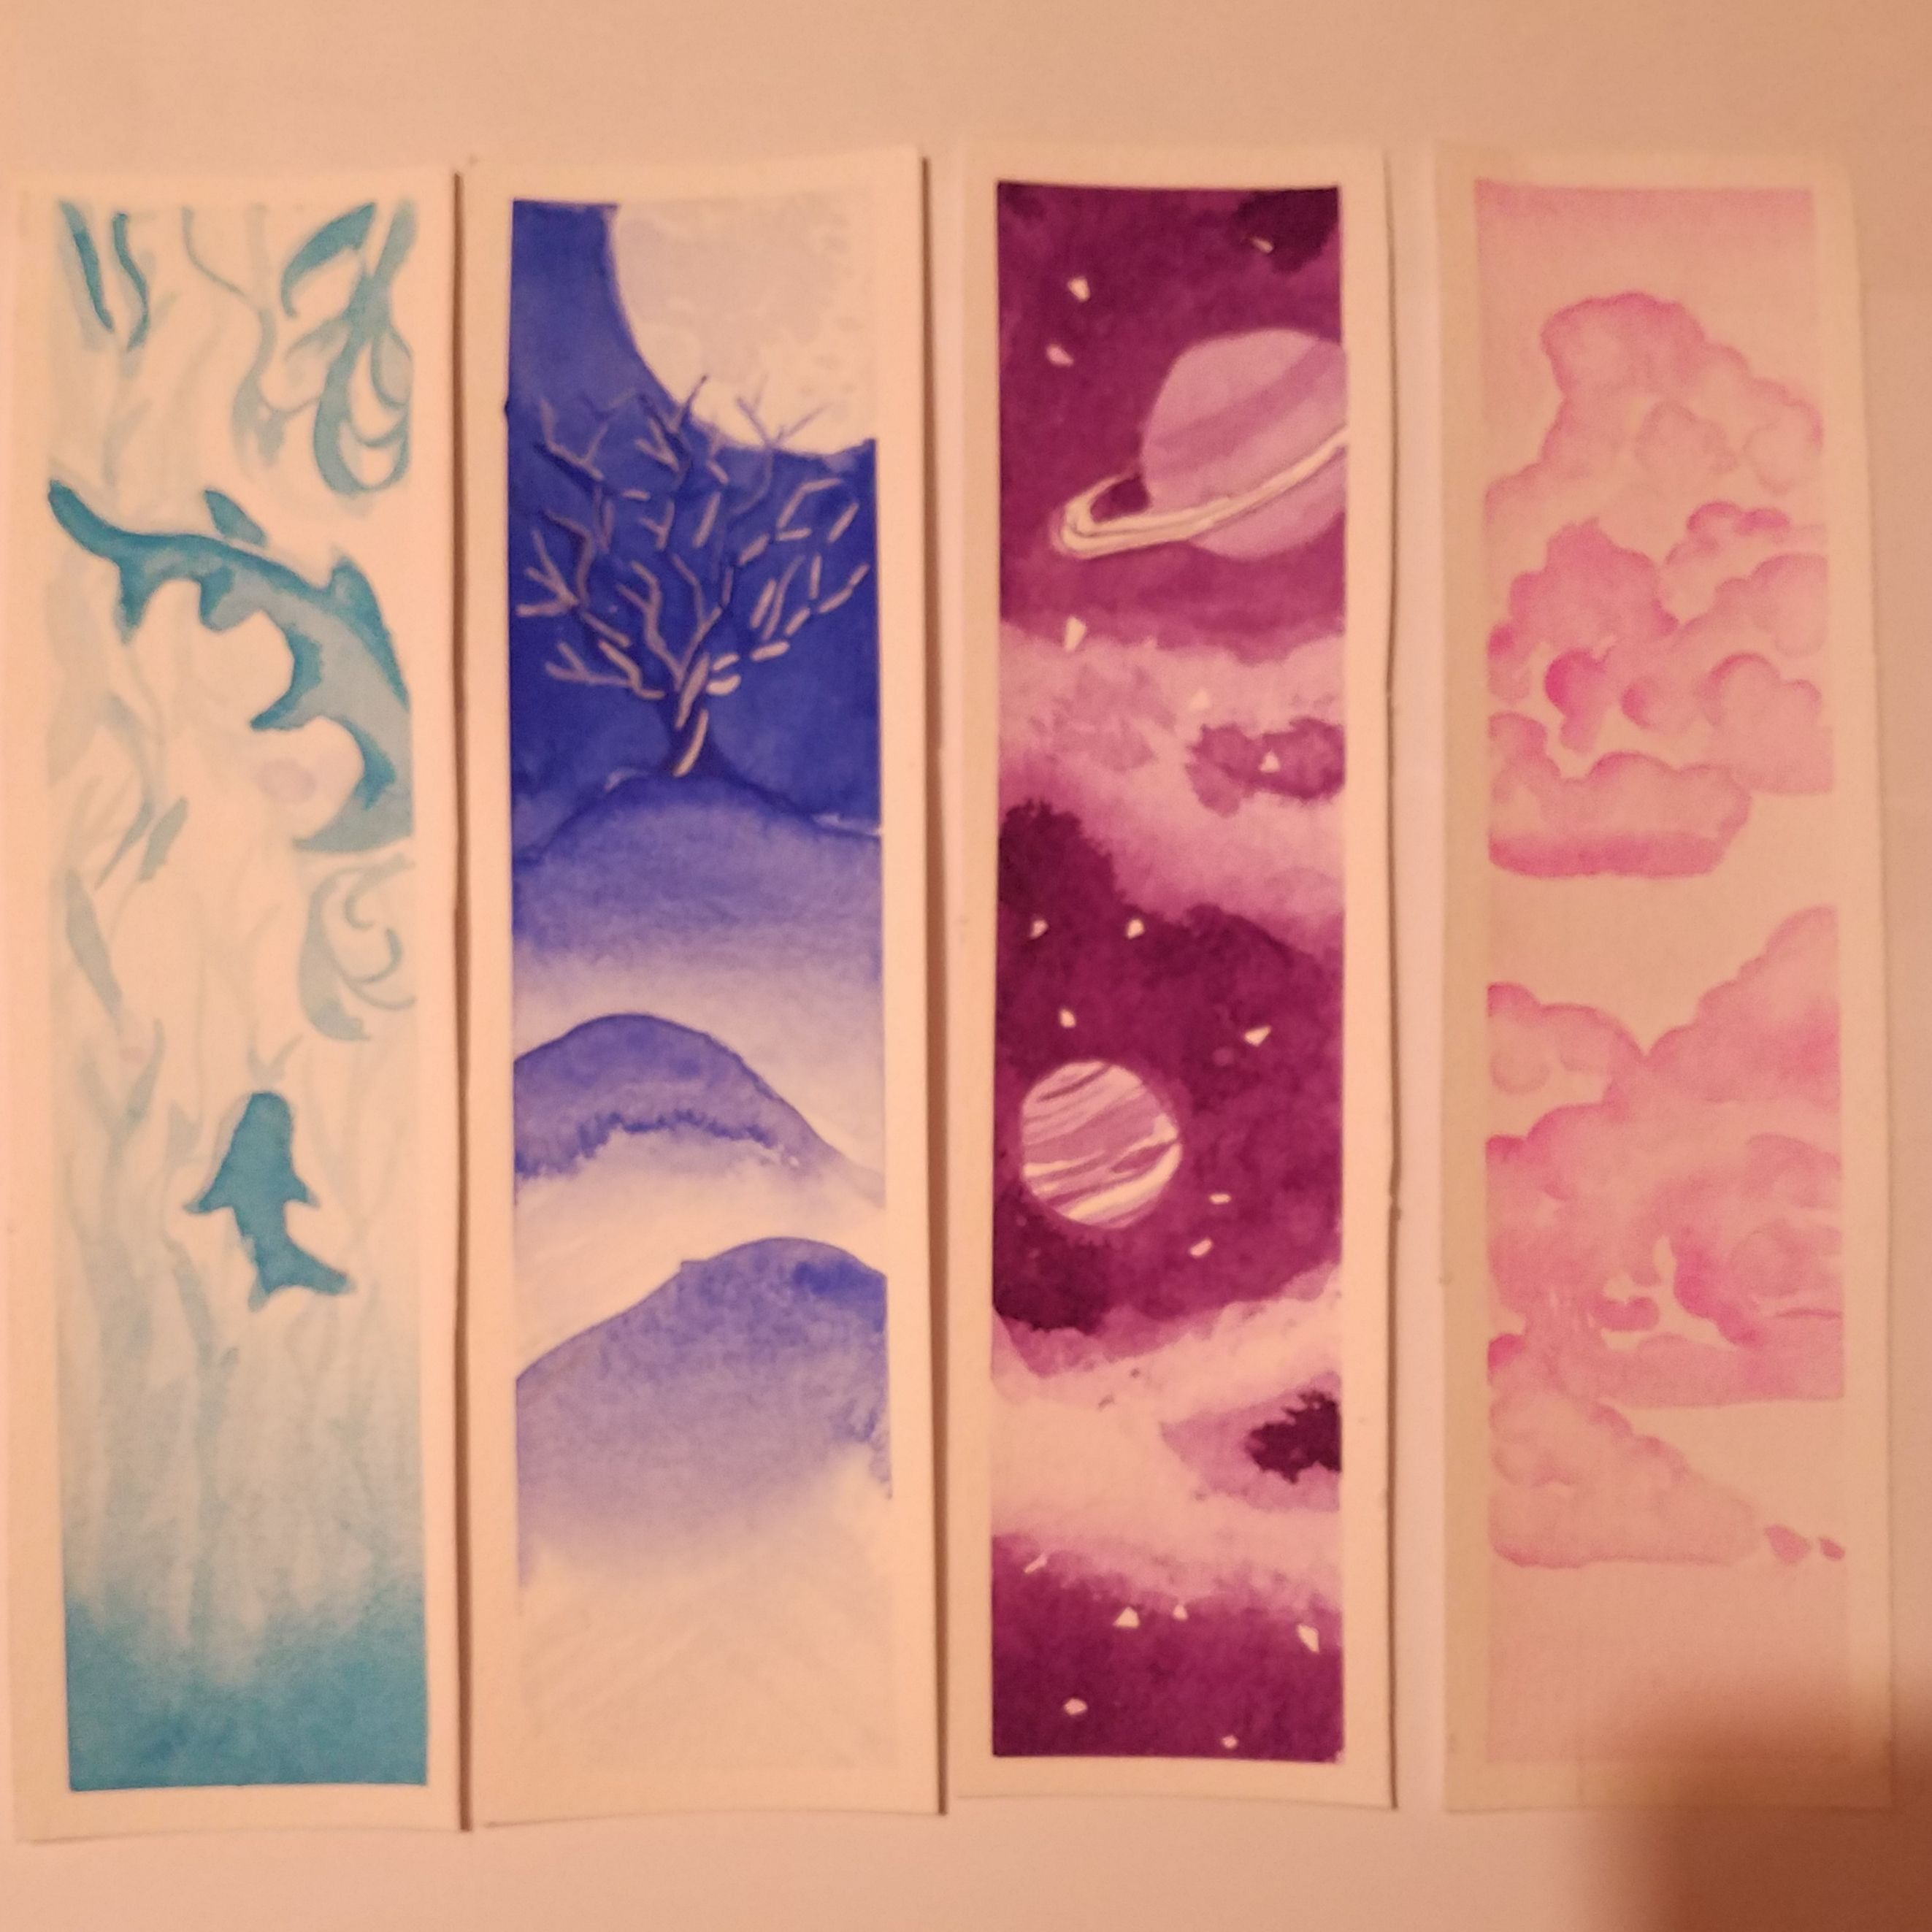 A Set Of Monochrome Watercolor Bookmarks By Fireflight Art